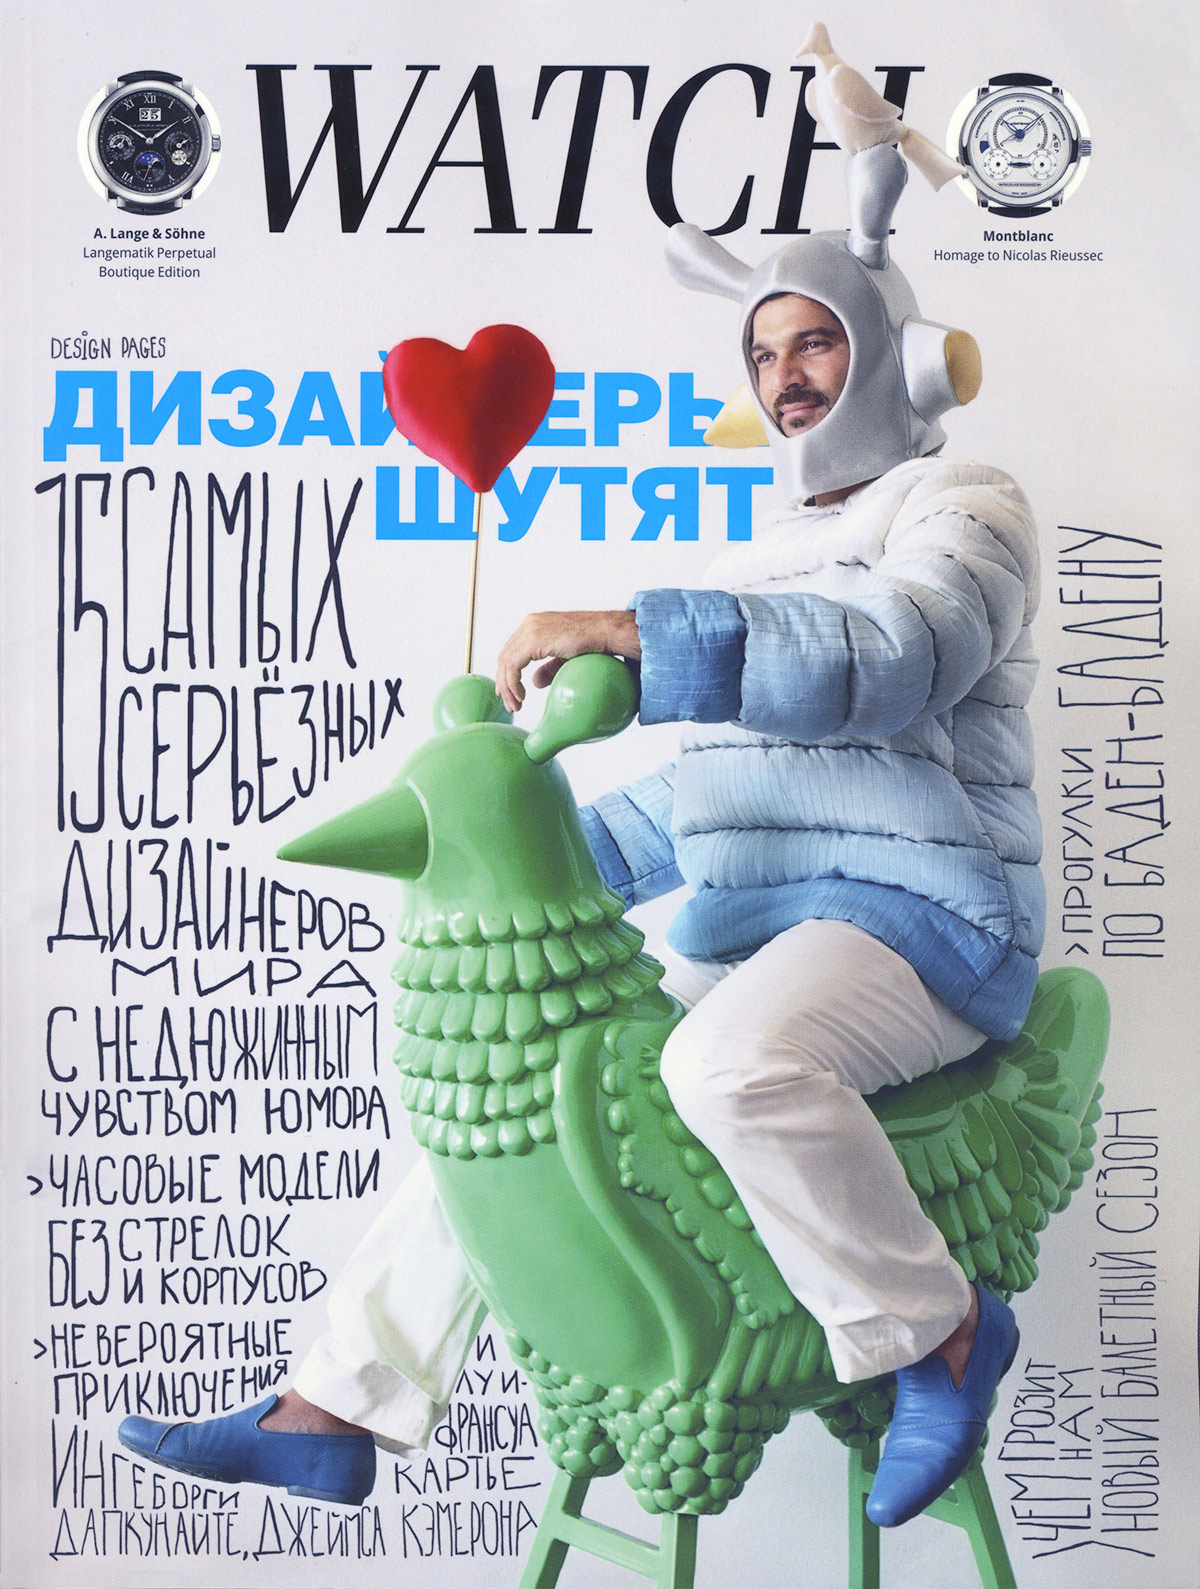 Watch Magazine 2014 2